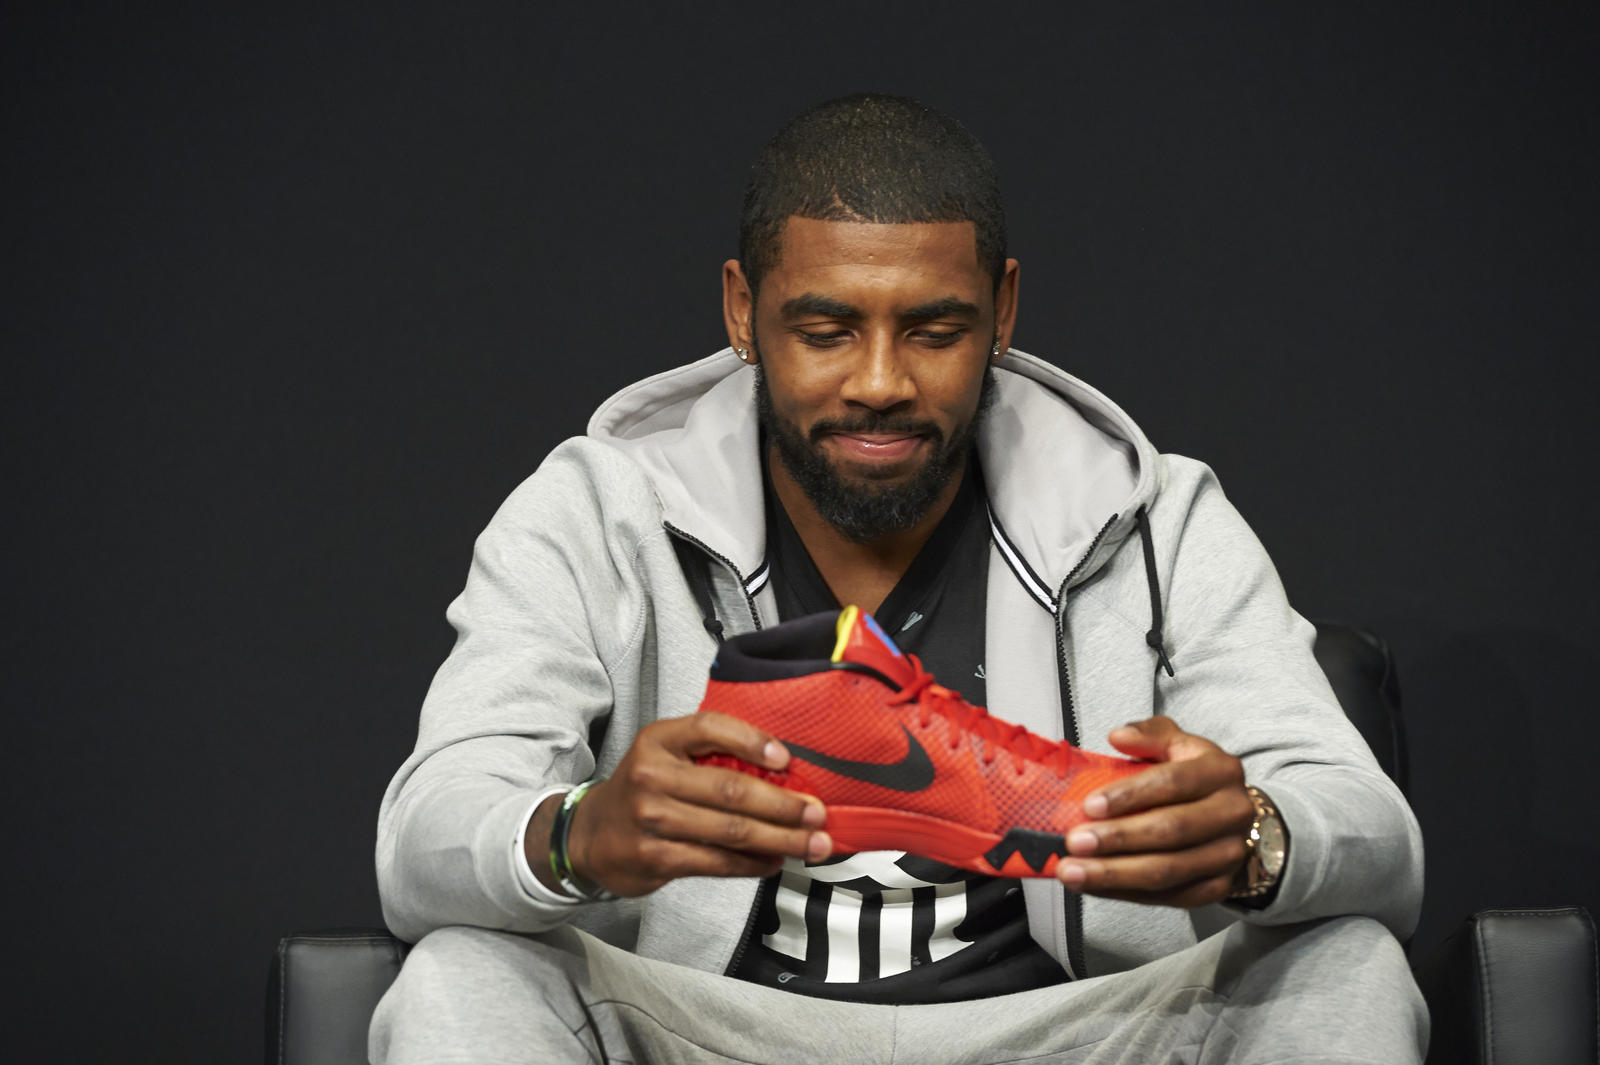 Hd Air Jordan Wallpaper 10 Things You Don T Know About Kyrie Irving Nike News